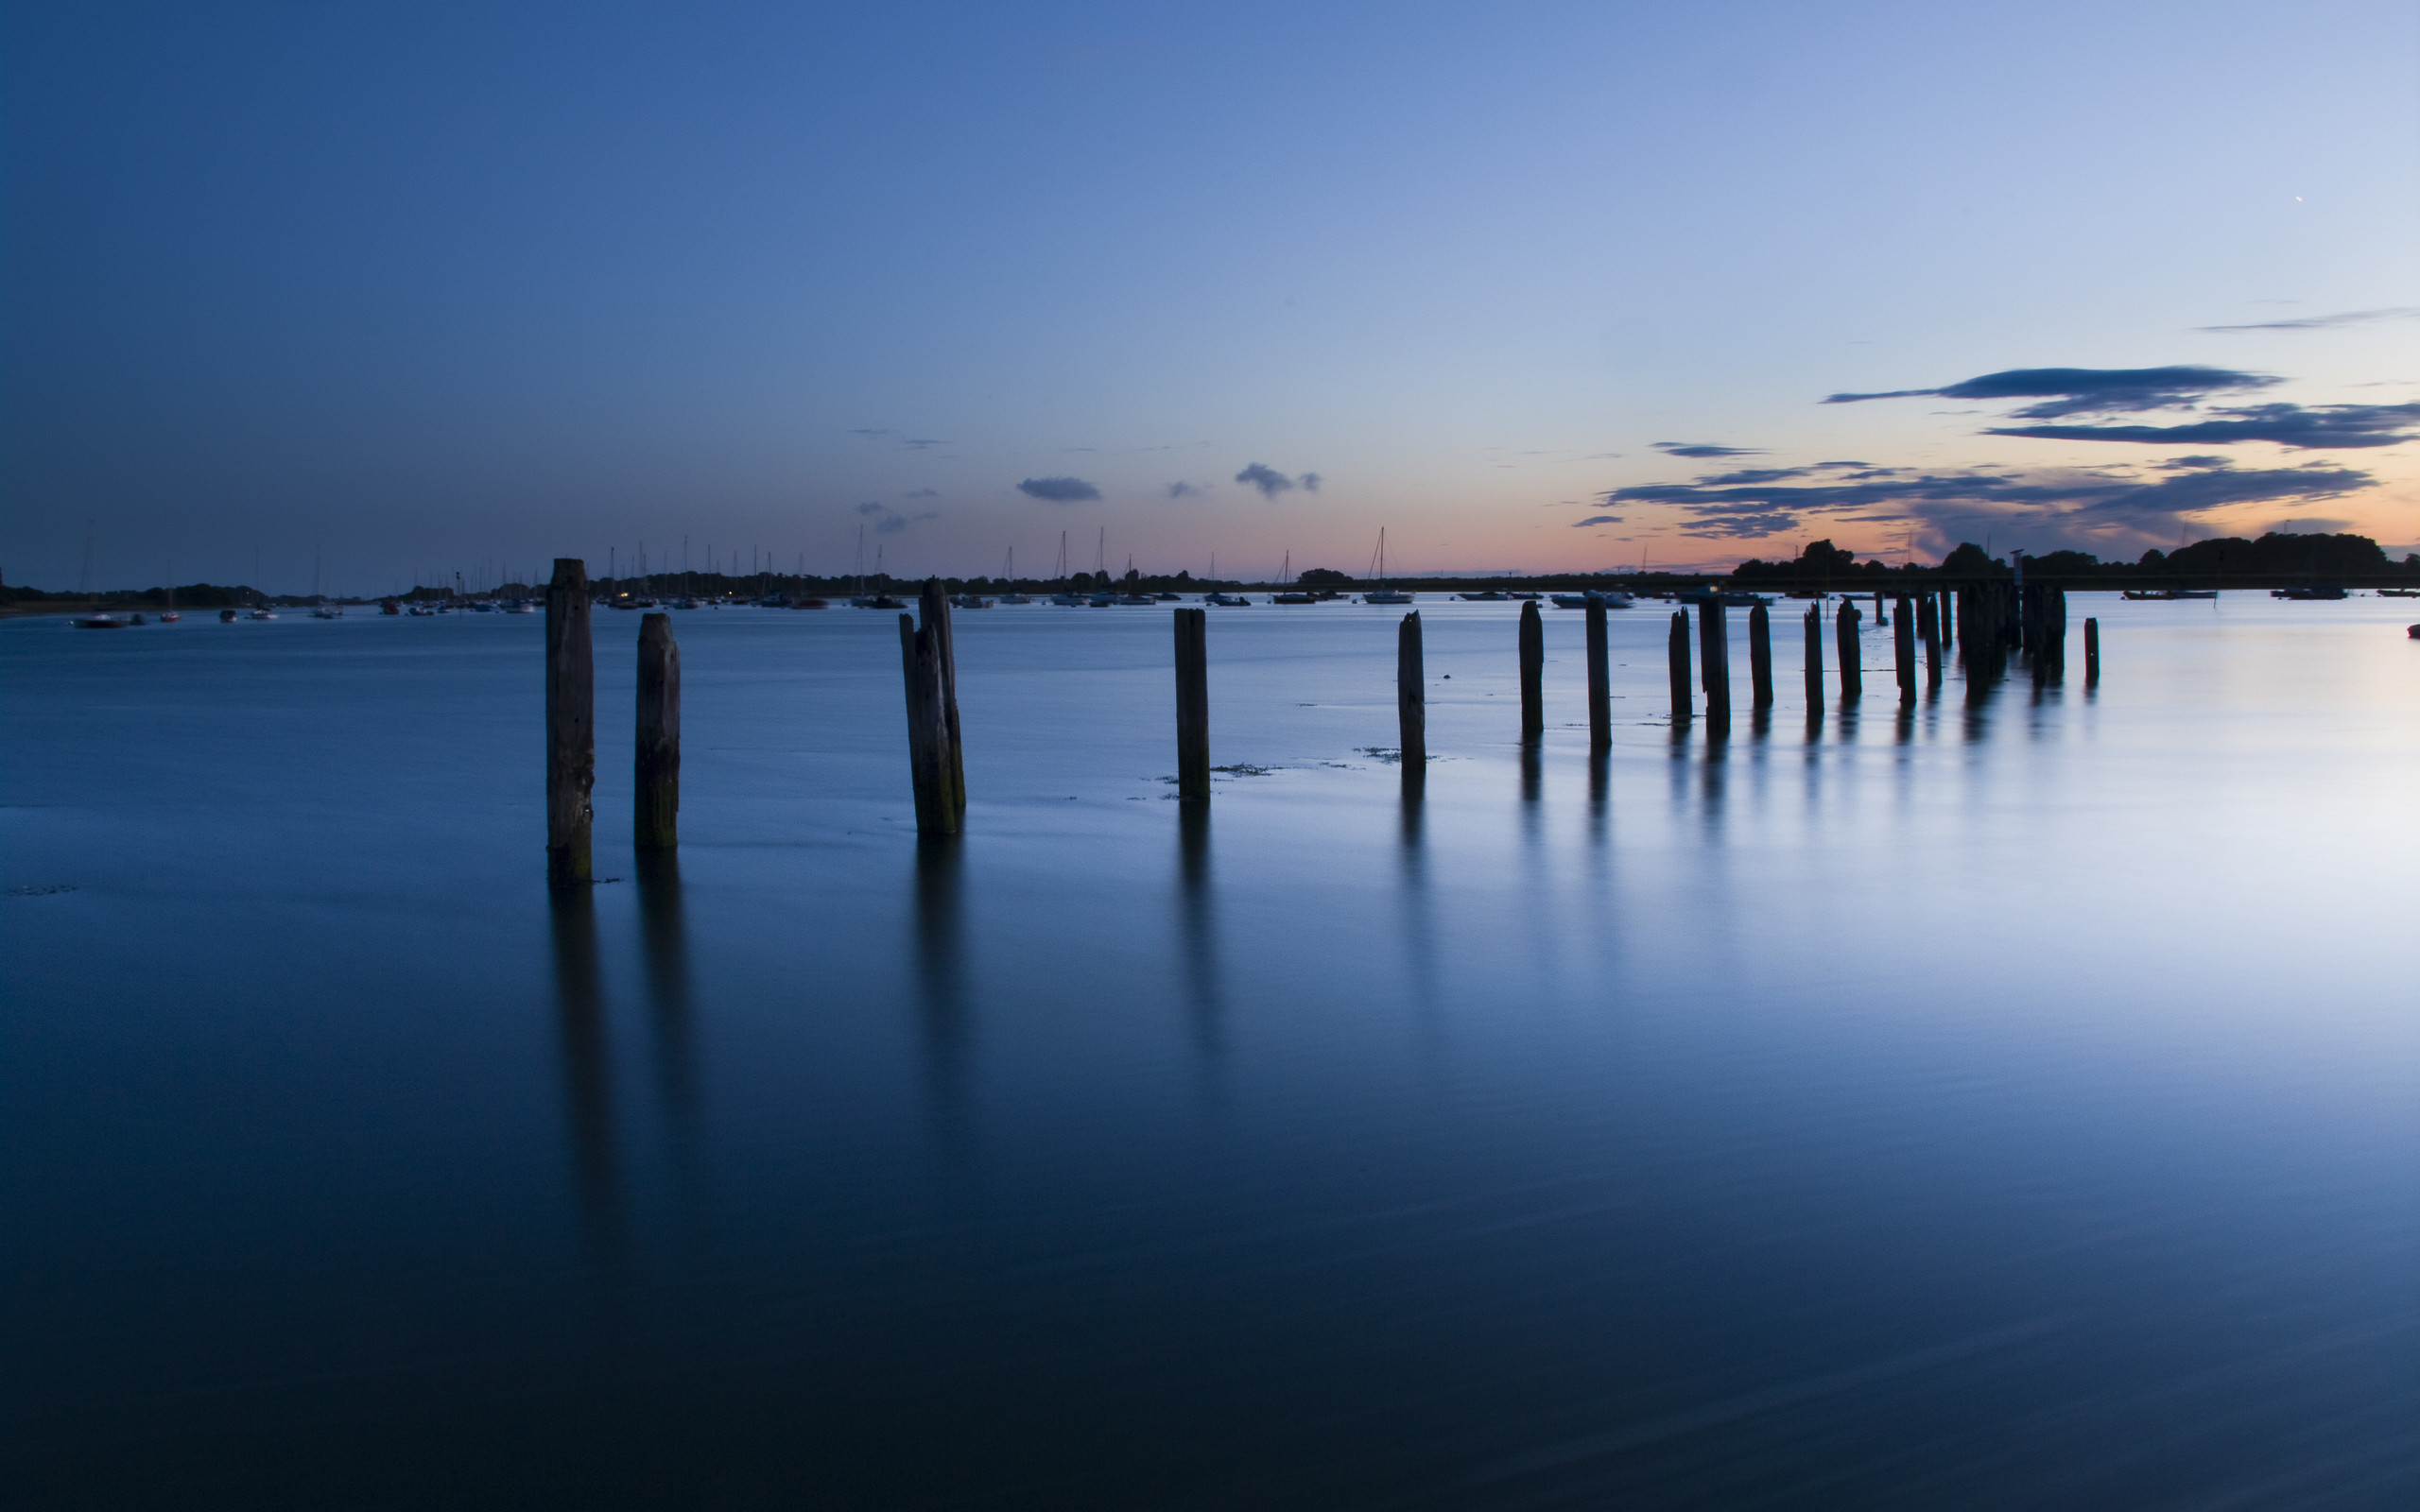 wallpaper.wiki-New-calm-water-backgrounds-view-PIC-